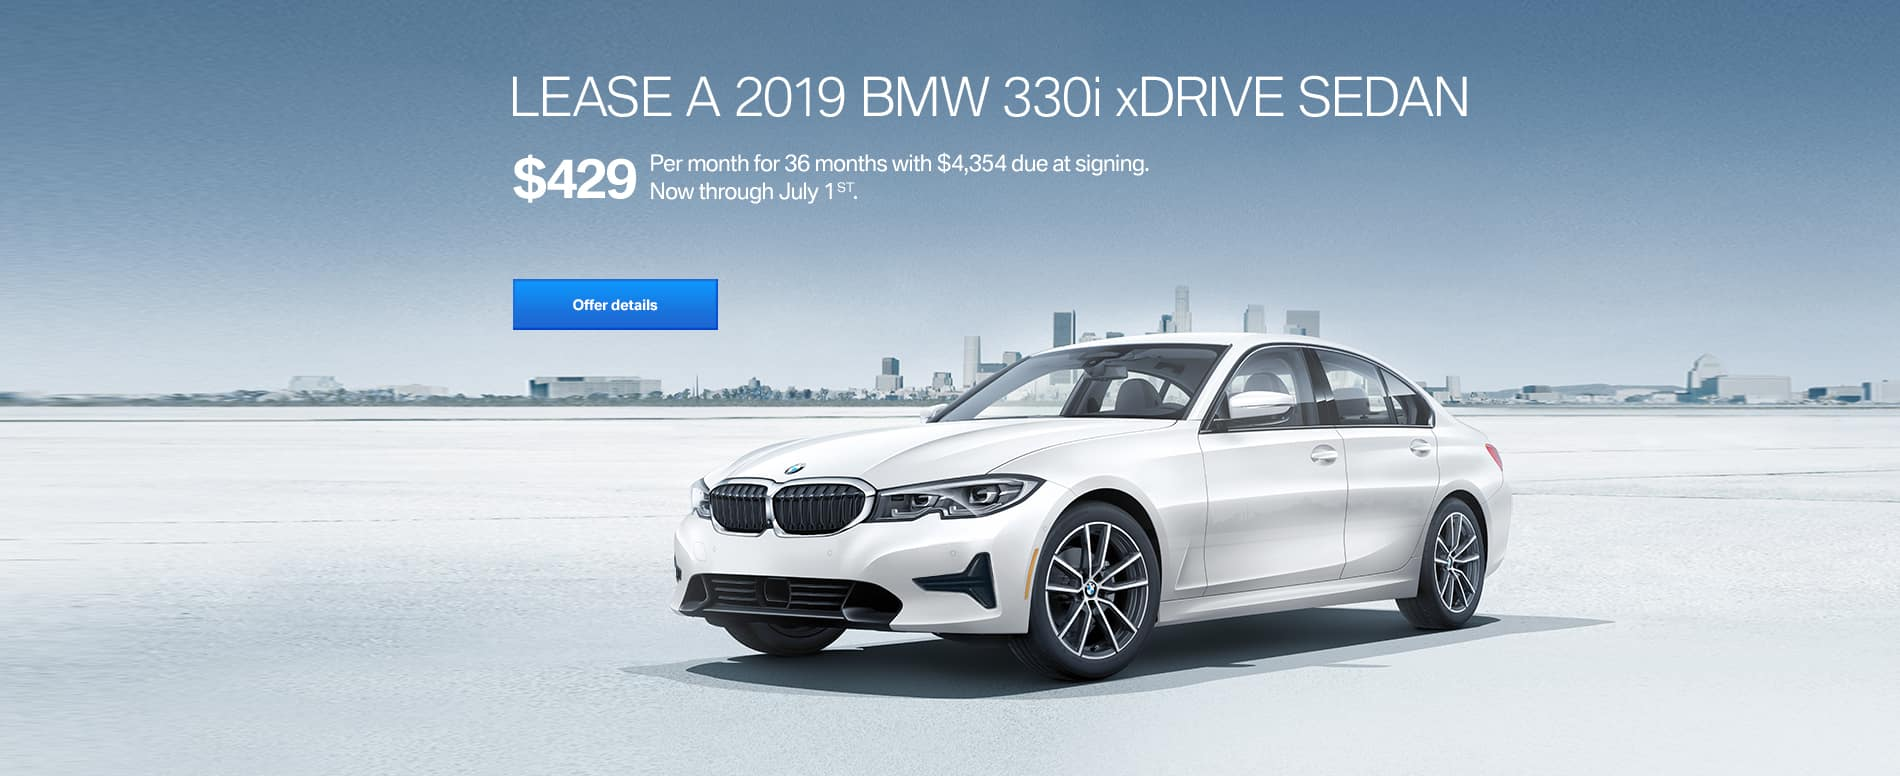 2019 BMW 330i xDrive June